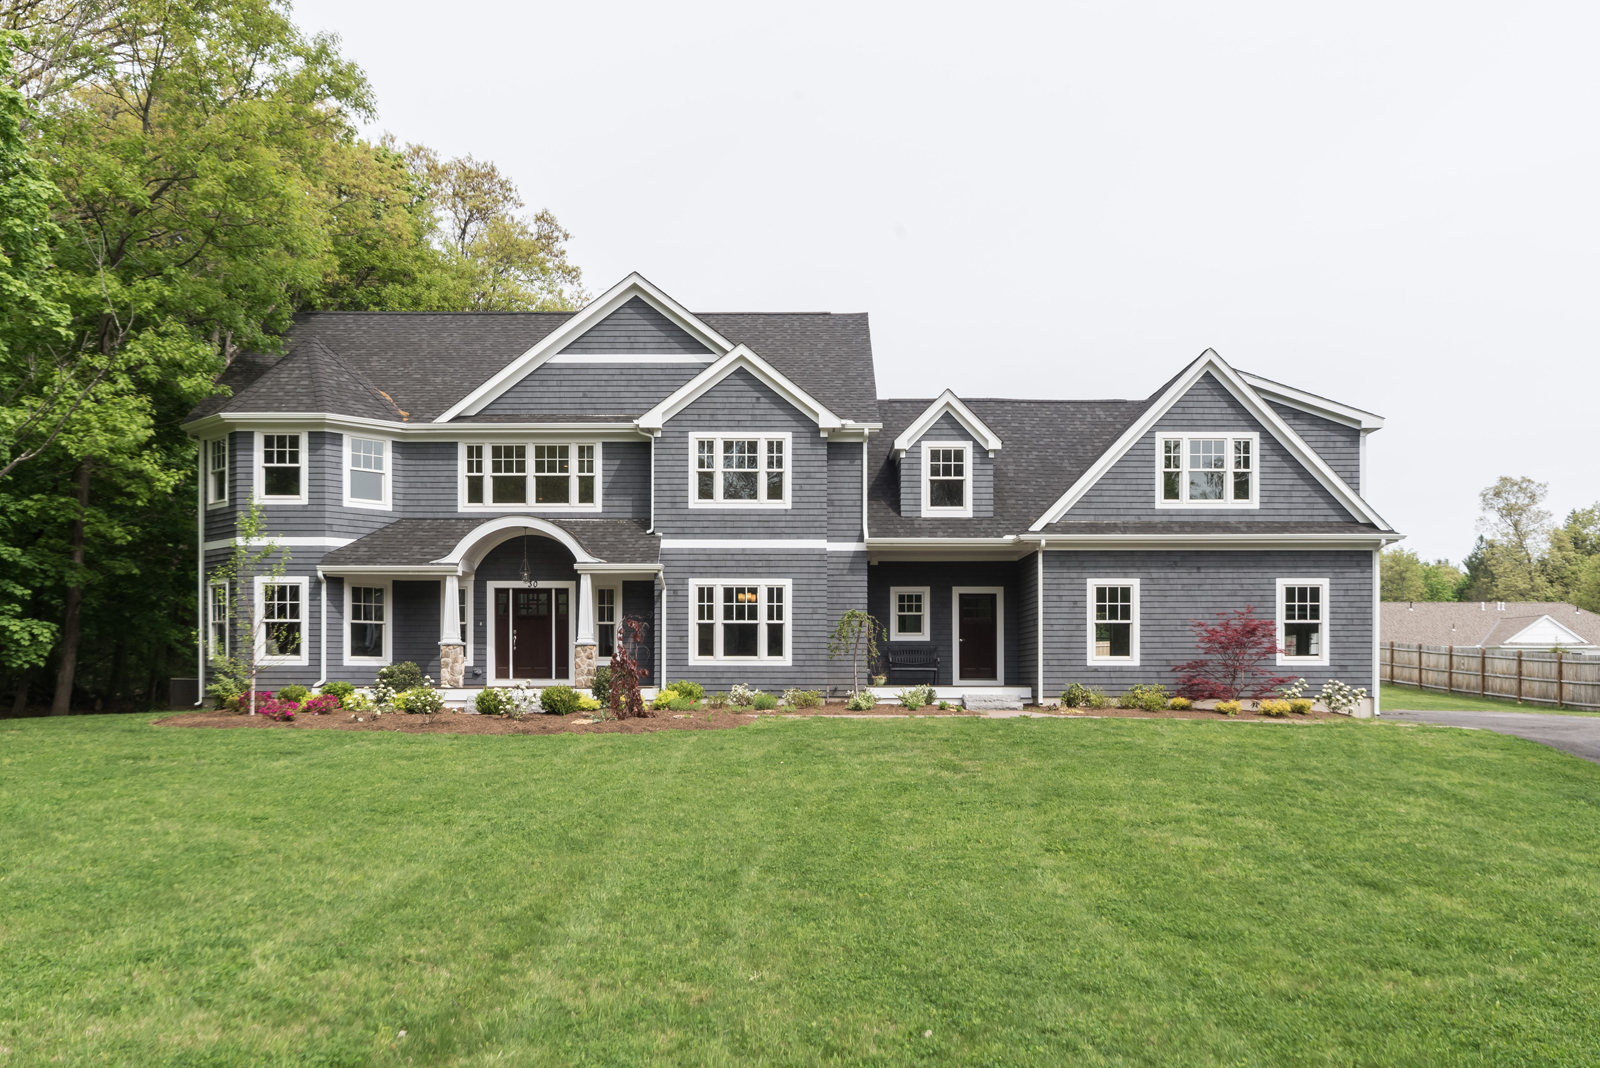 Property For Sale at Stunning Arts And Crafts Inspired New Construction